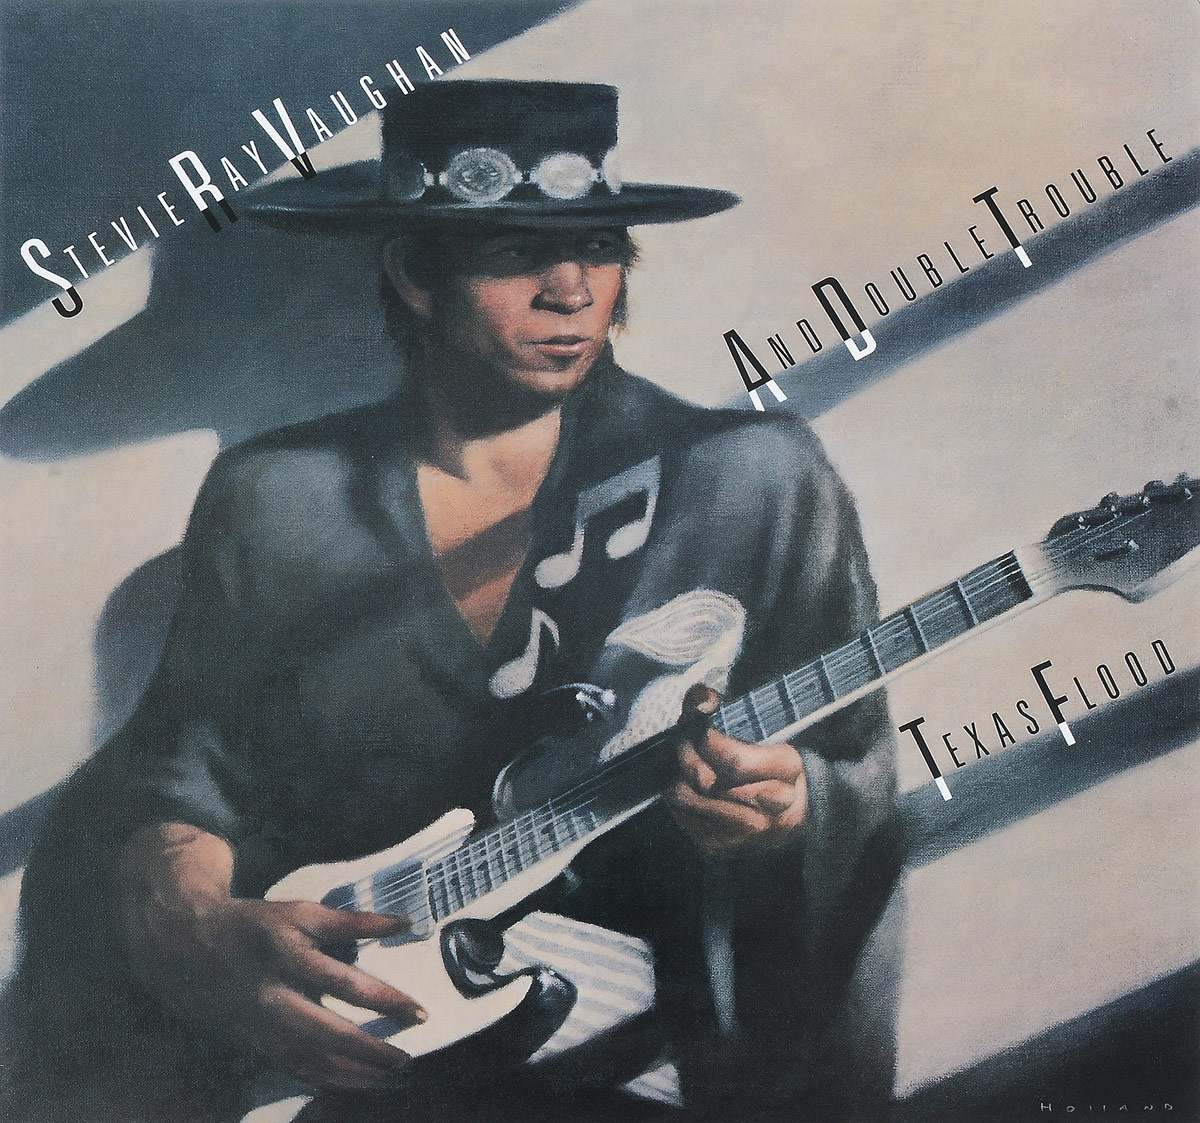 Stevie Ray Vaughan & Double Trouble Stevie Ray Vaughan And Double Trouble. Texas Flood (LP) стиви рэй воэн the double trouble stevie ray vaughan and double trouble texas flood page 4 page 4